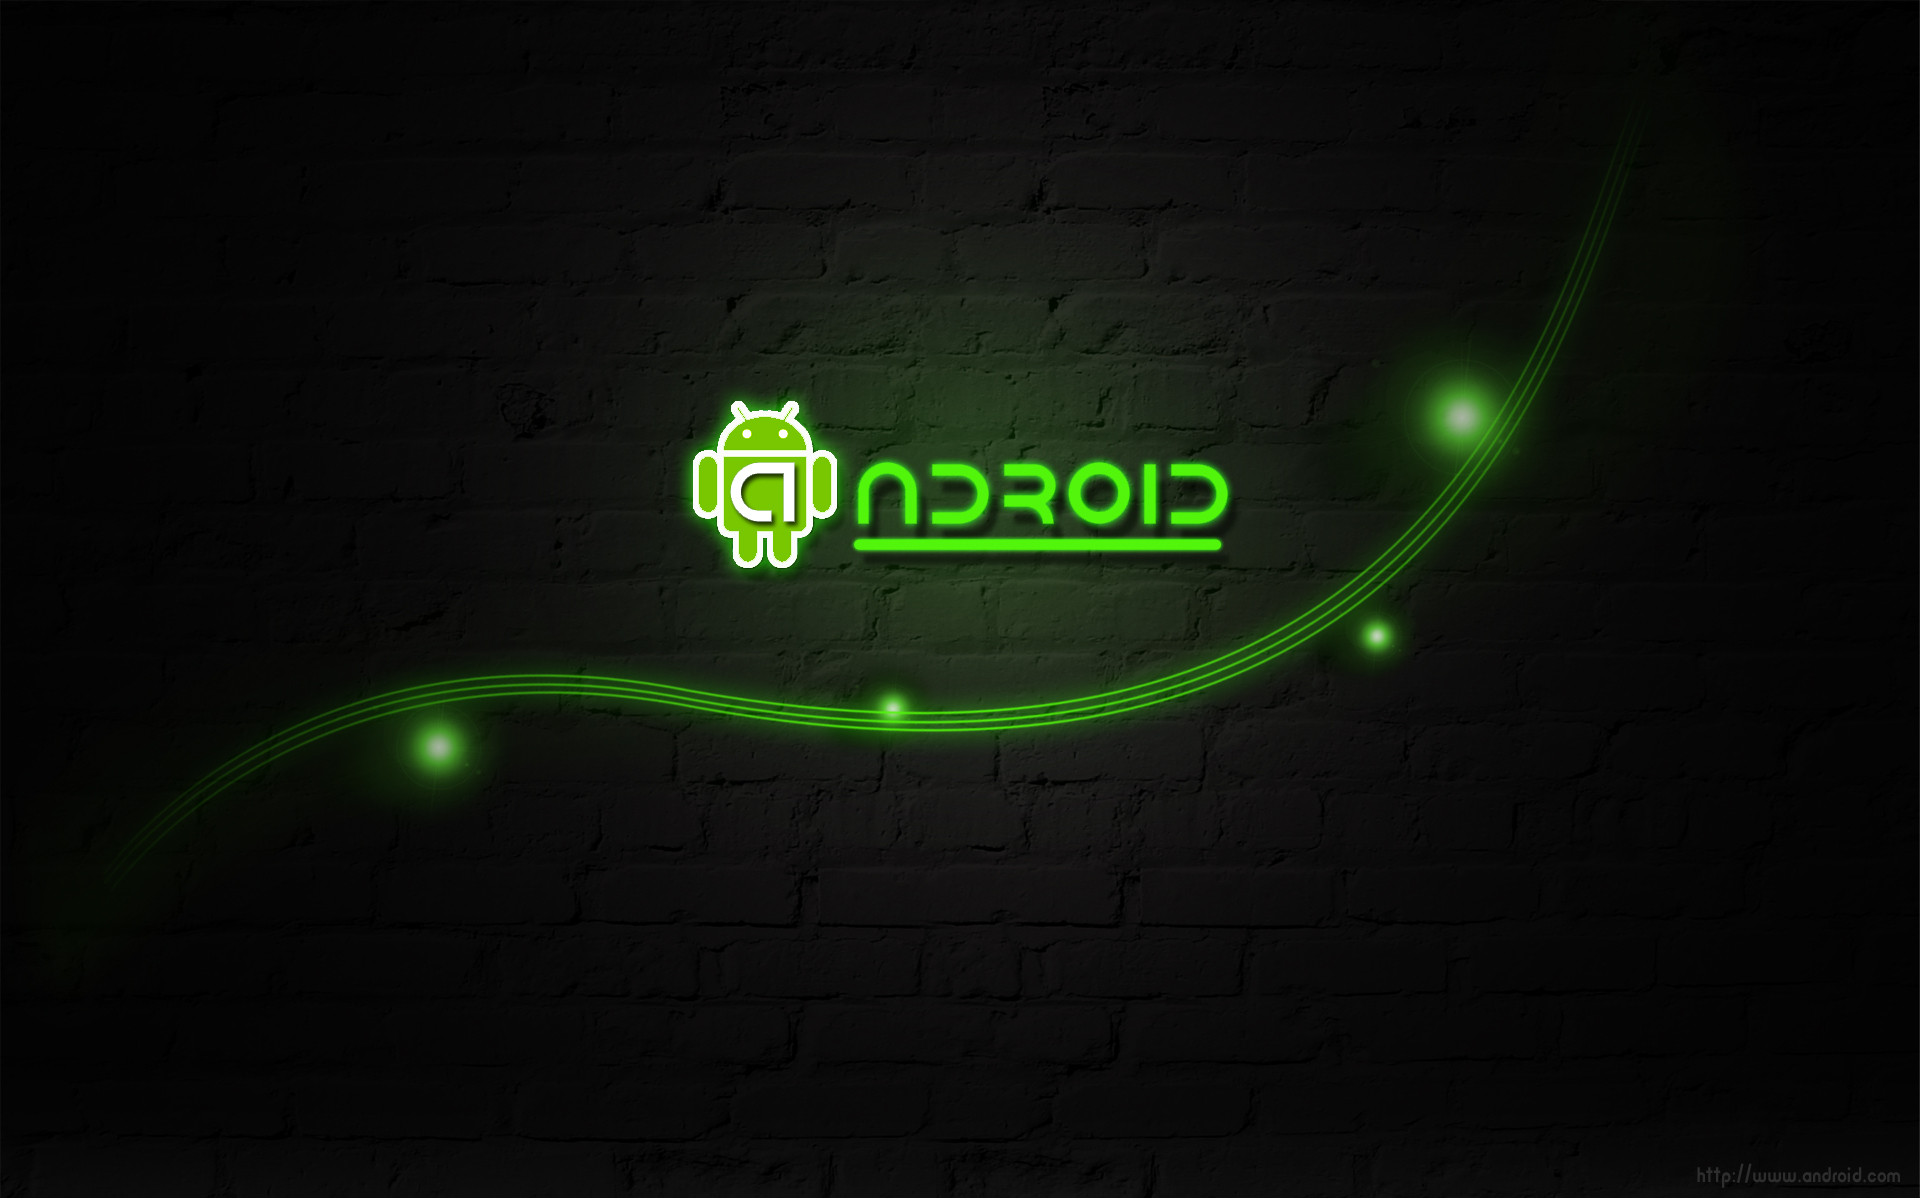 Android Hd Wallpaper Background Image 1920x1200 Id